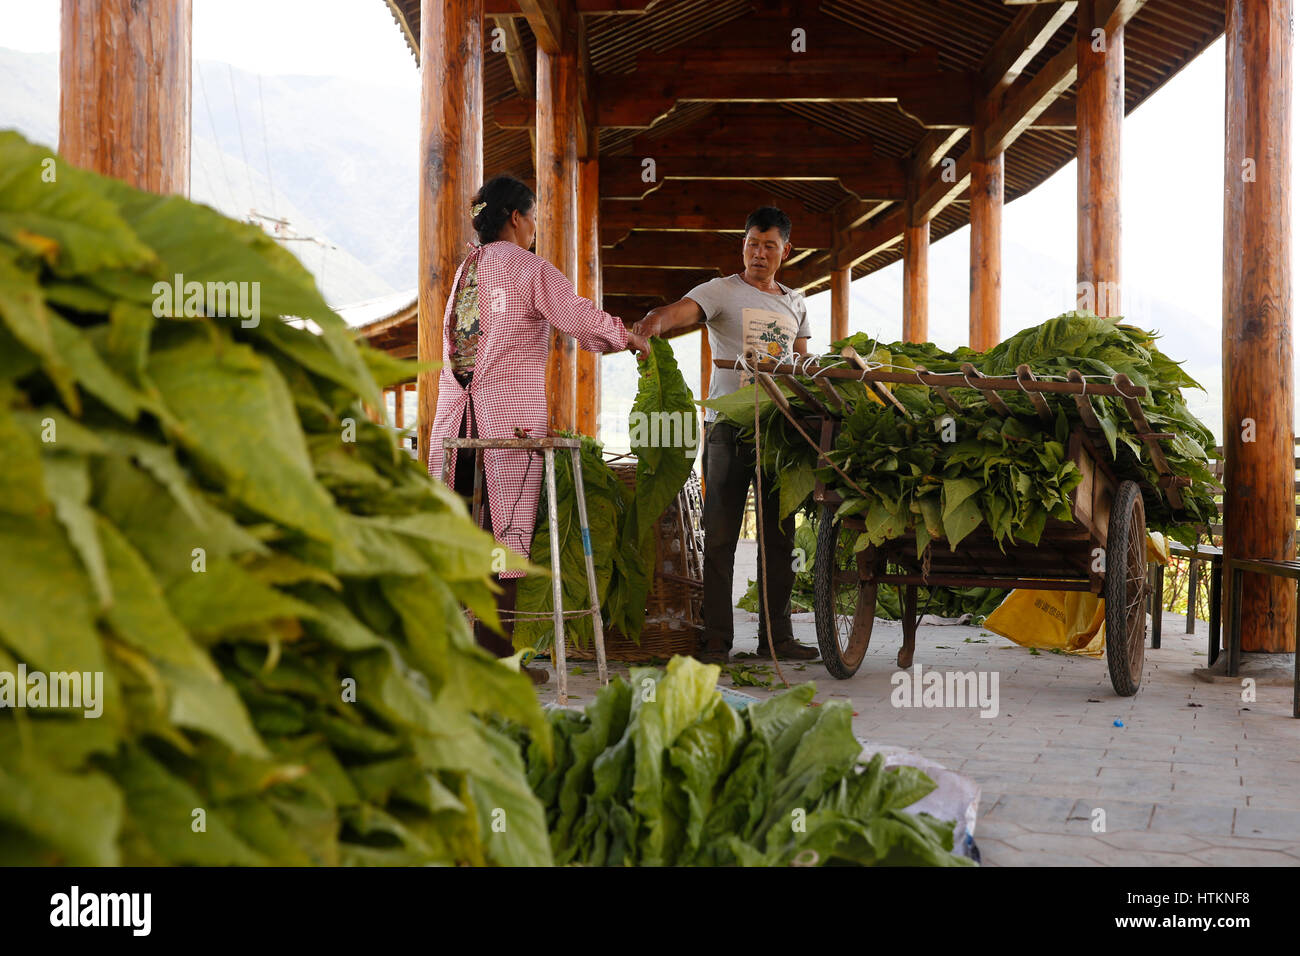 A couple perpare tobacco leaves attaching them with string to rods to commence the drying process during the tobacco - Stock Image